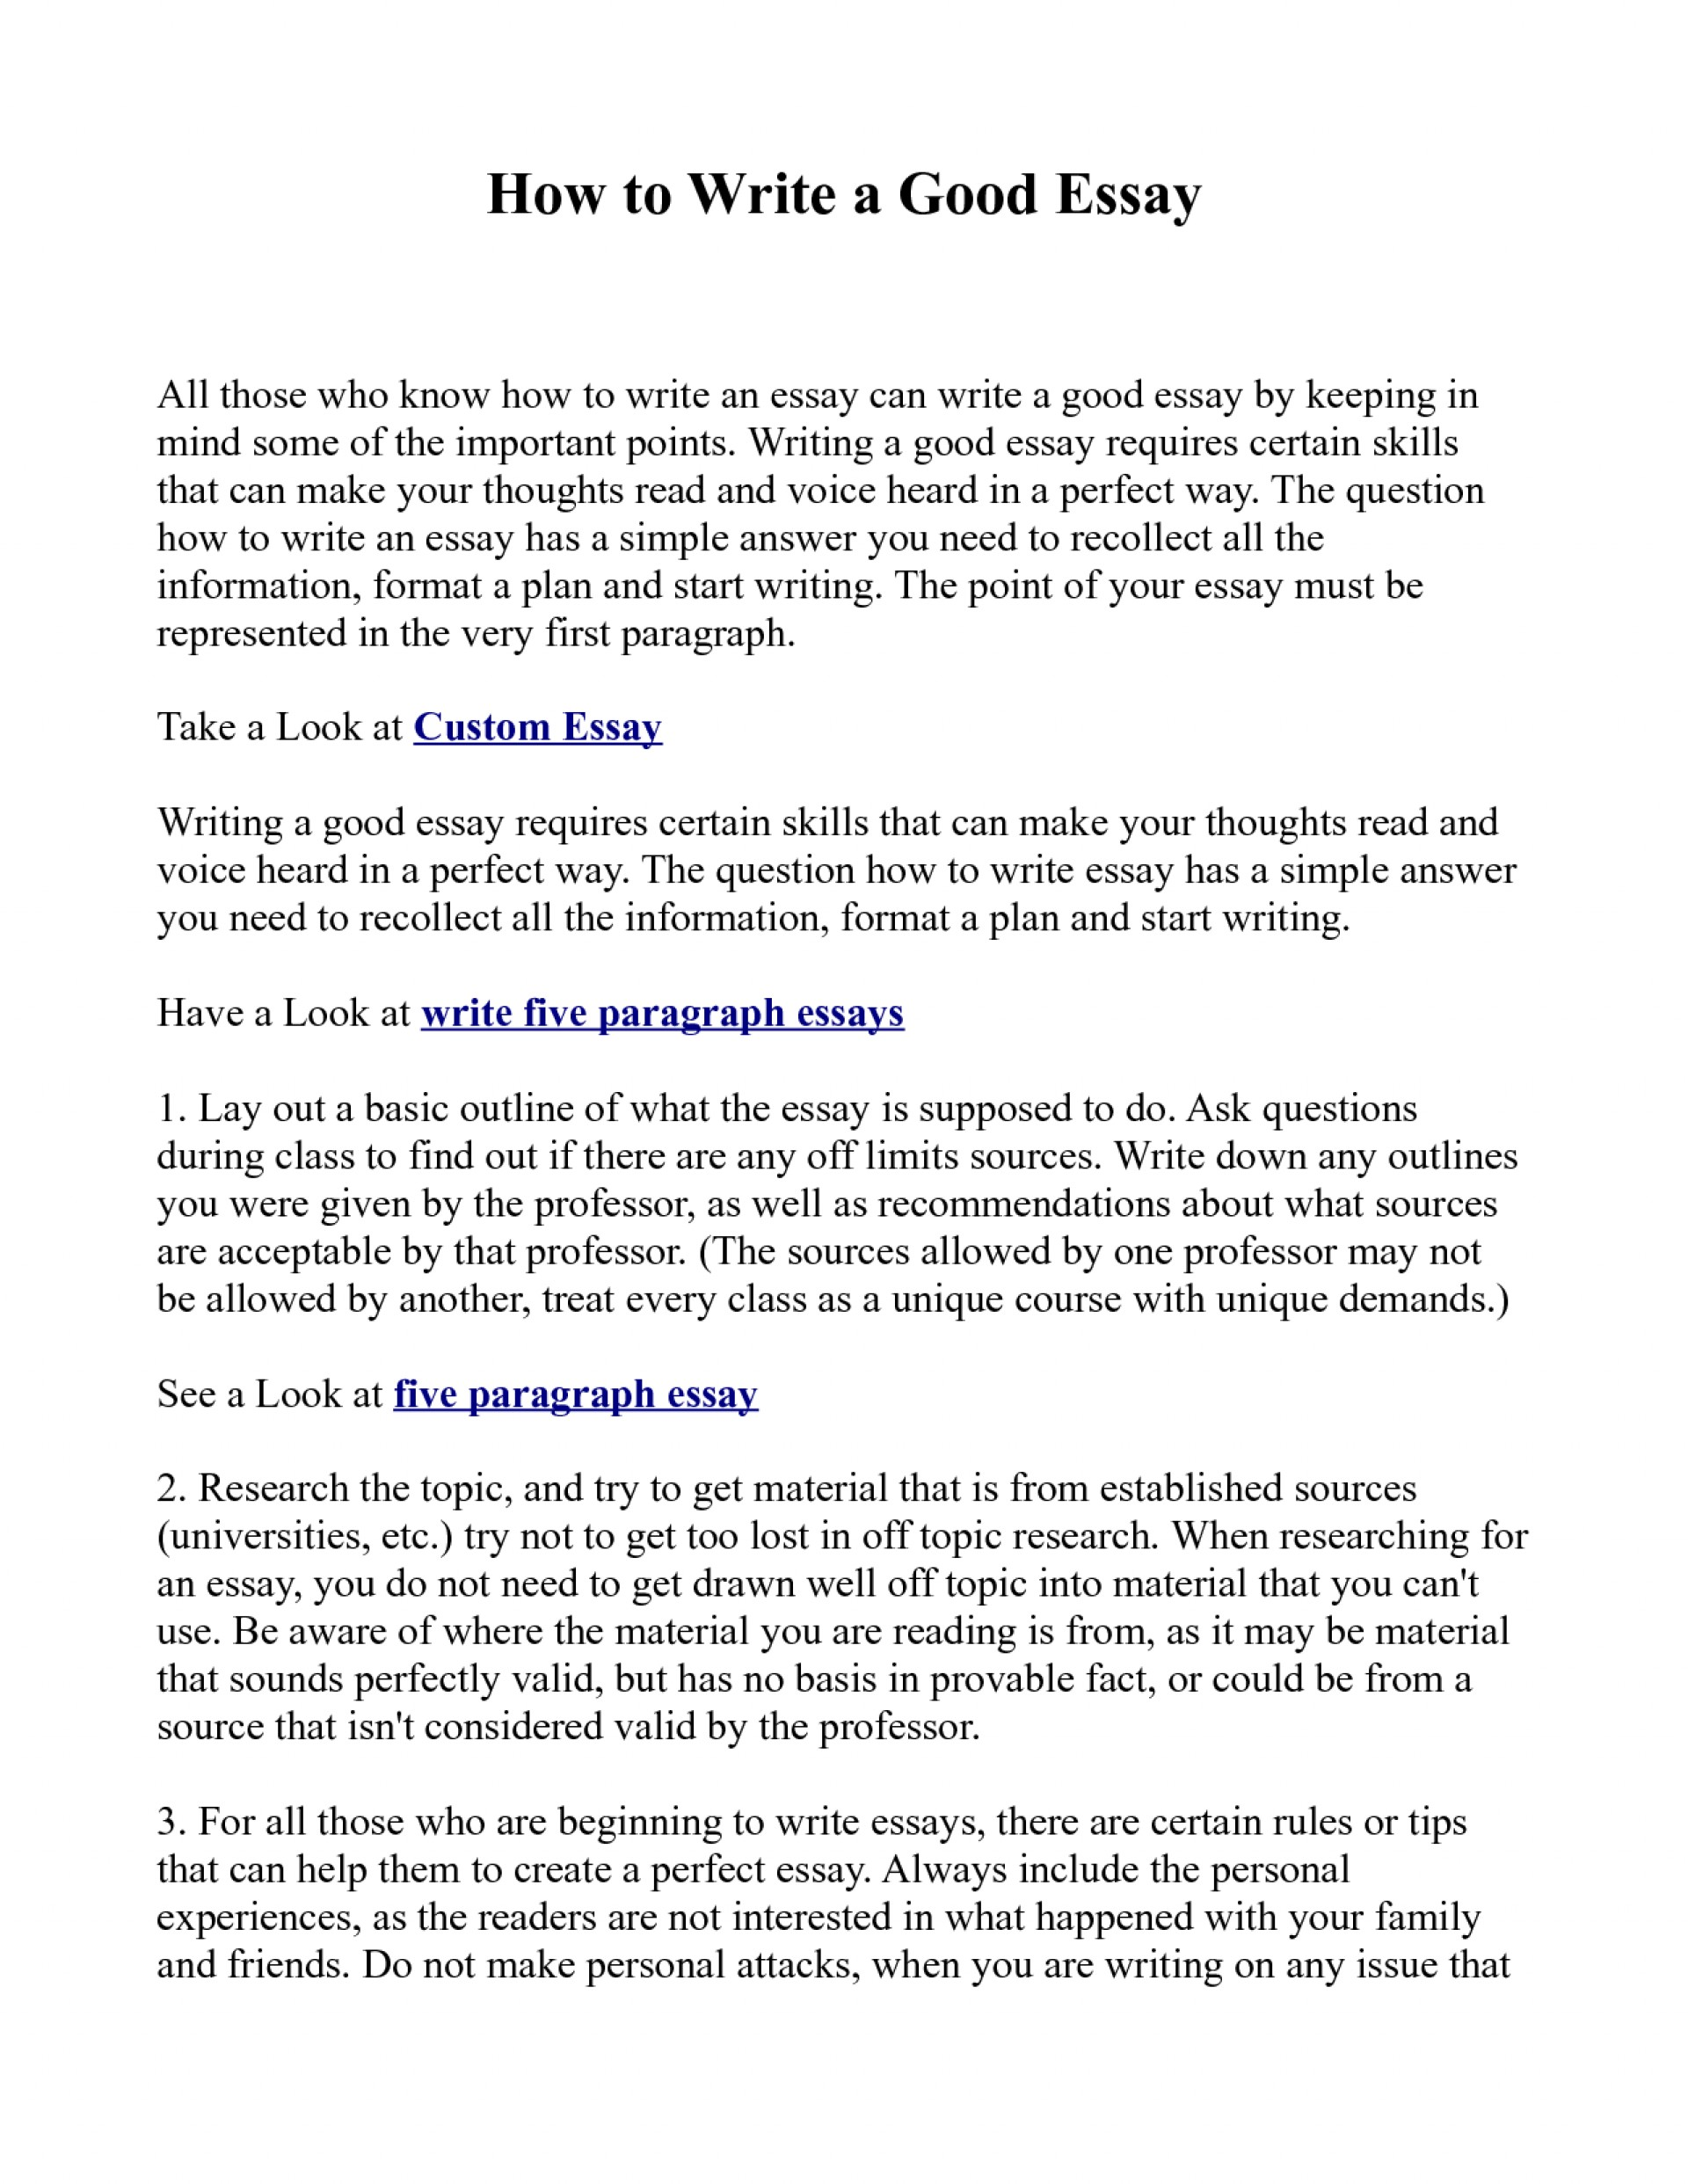 001 Best Way To Start An Essay Example Incredible How Introduction About Yourself Ways With A Quote For College 1920